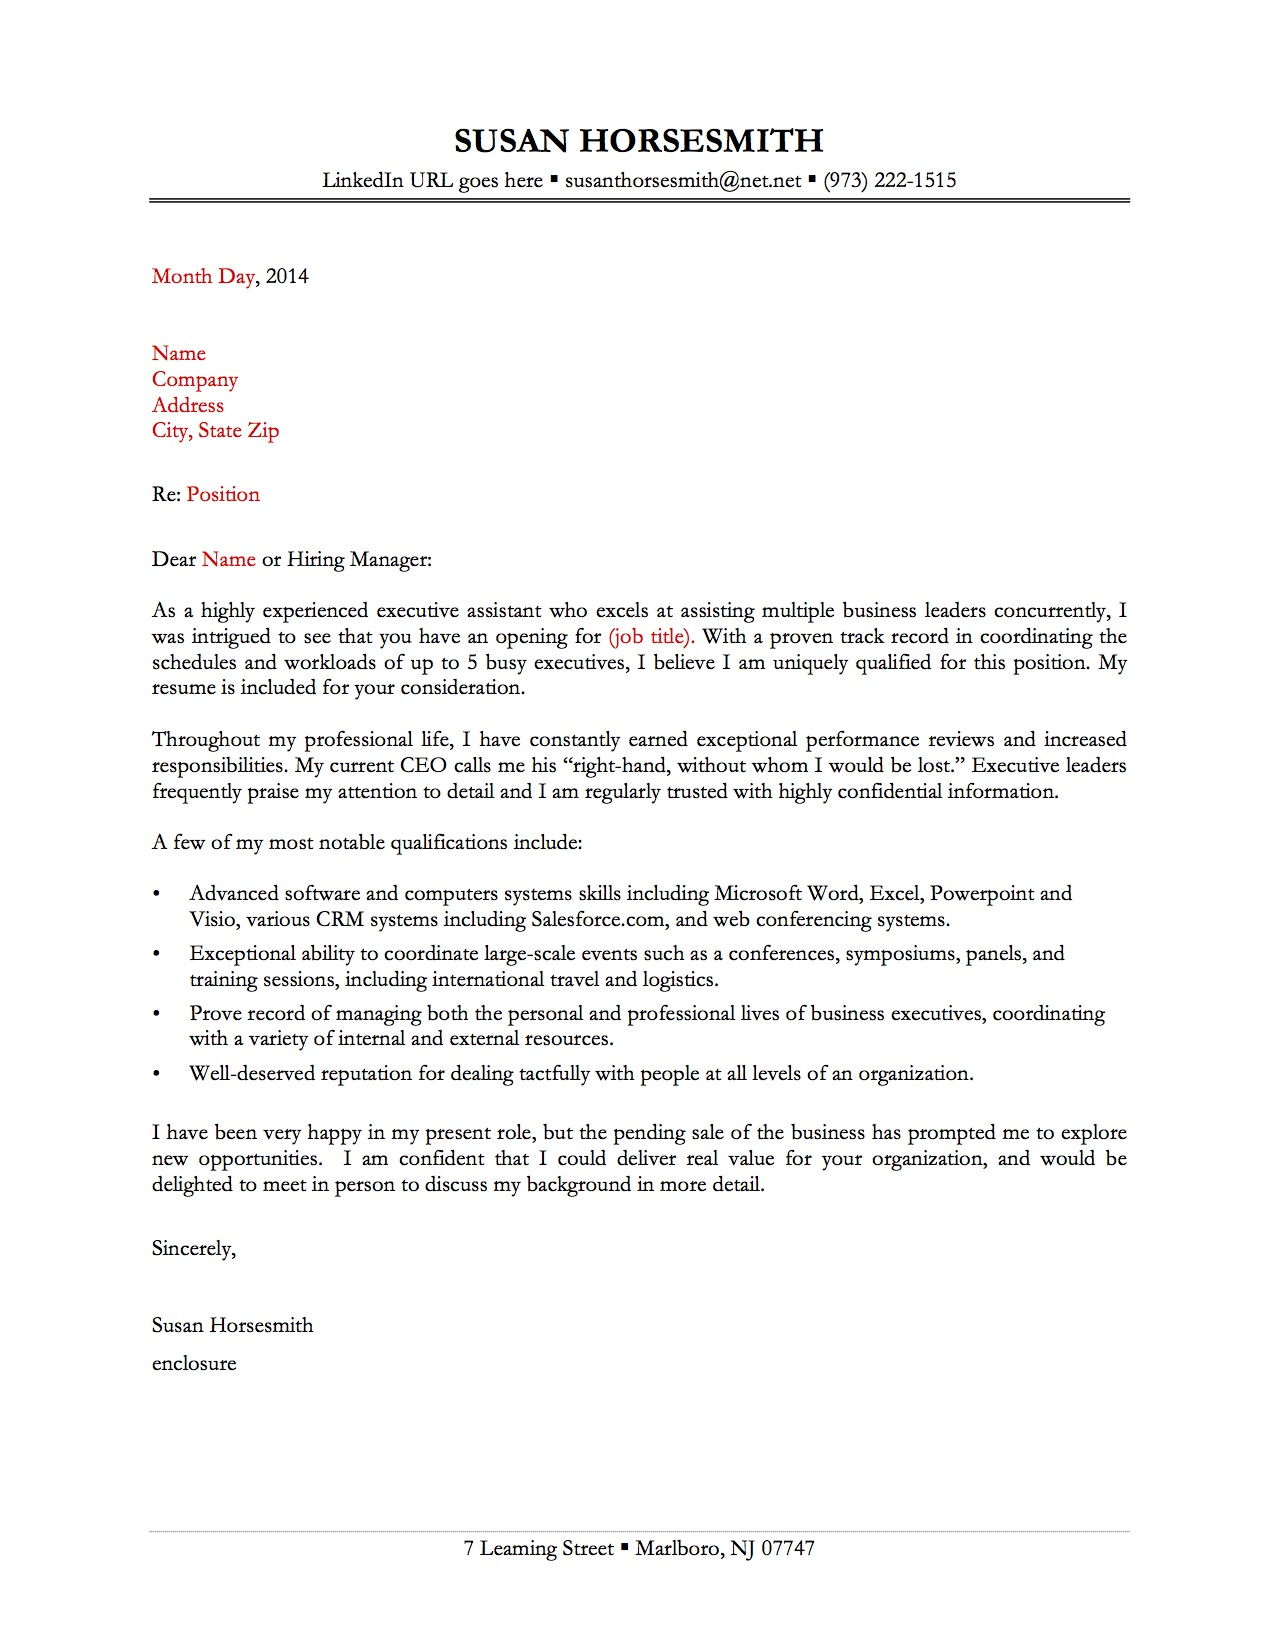 sample cover letter 1 - Writing A Cover Letter To A Company